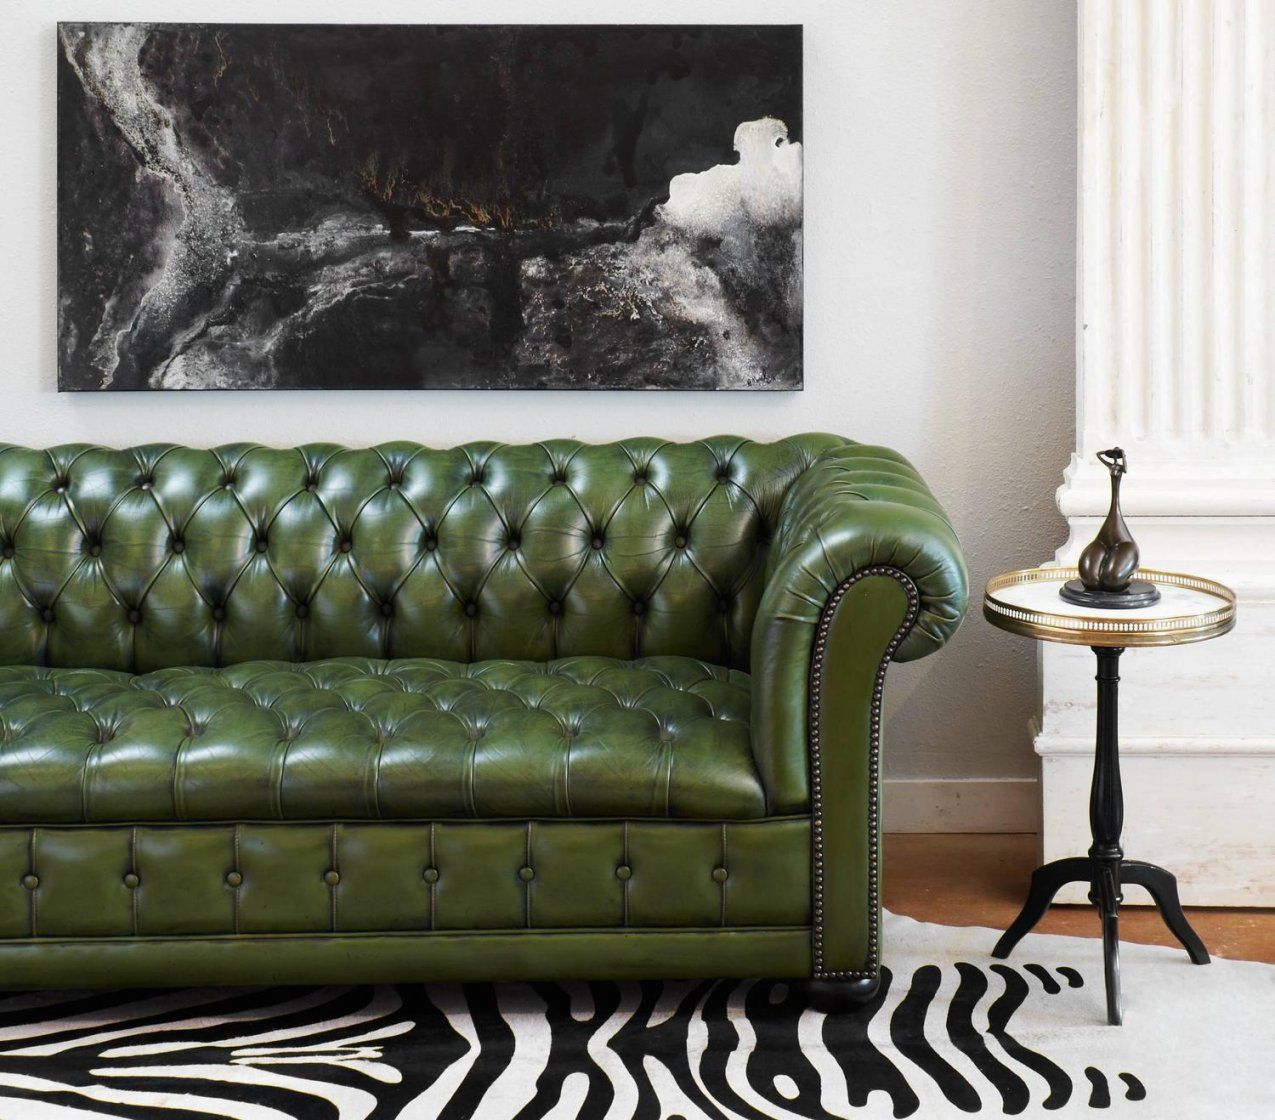 Vintage Leather Chesterfield Sofa At 1Stdibs von Green Leather Chesterfield Sofa Photo